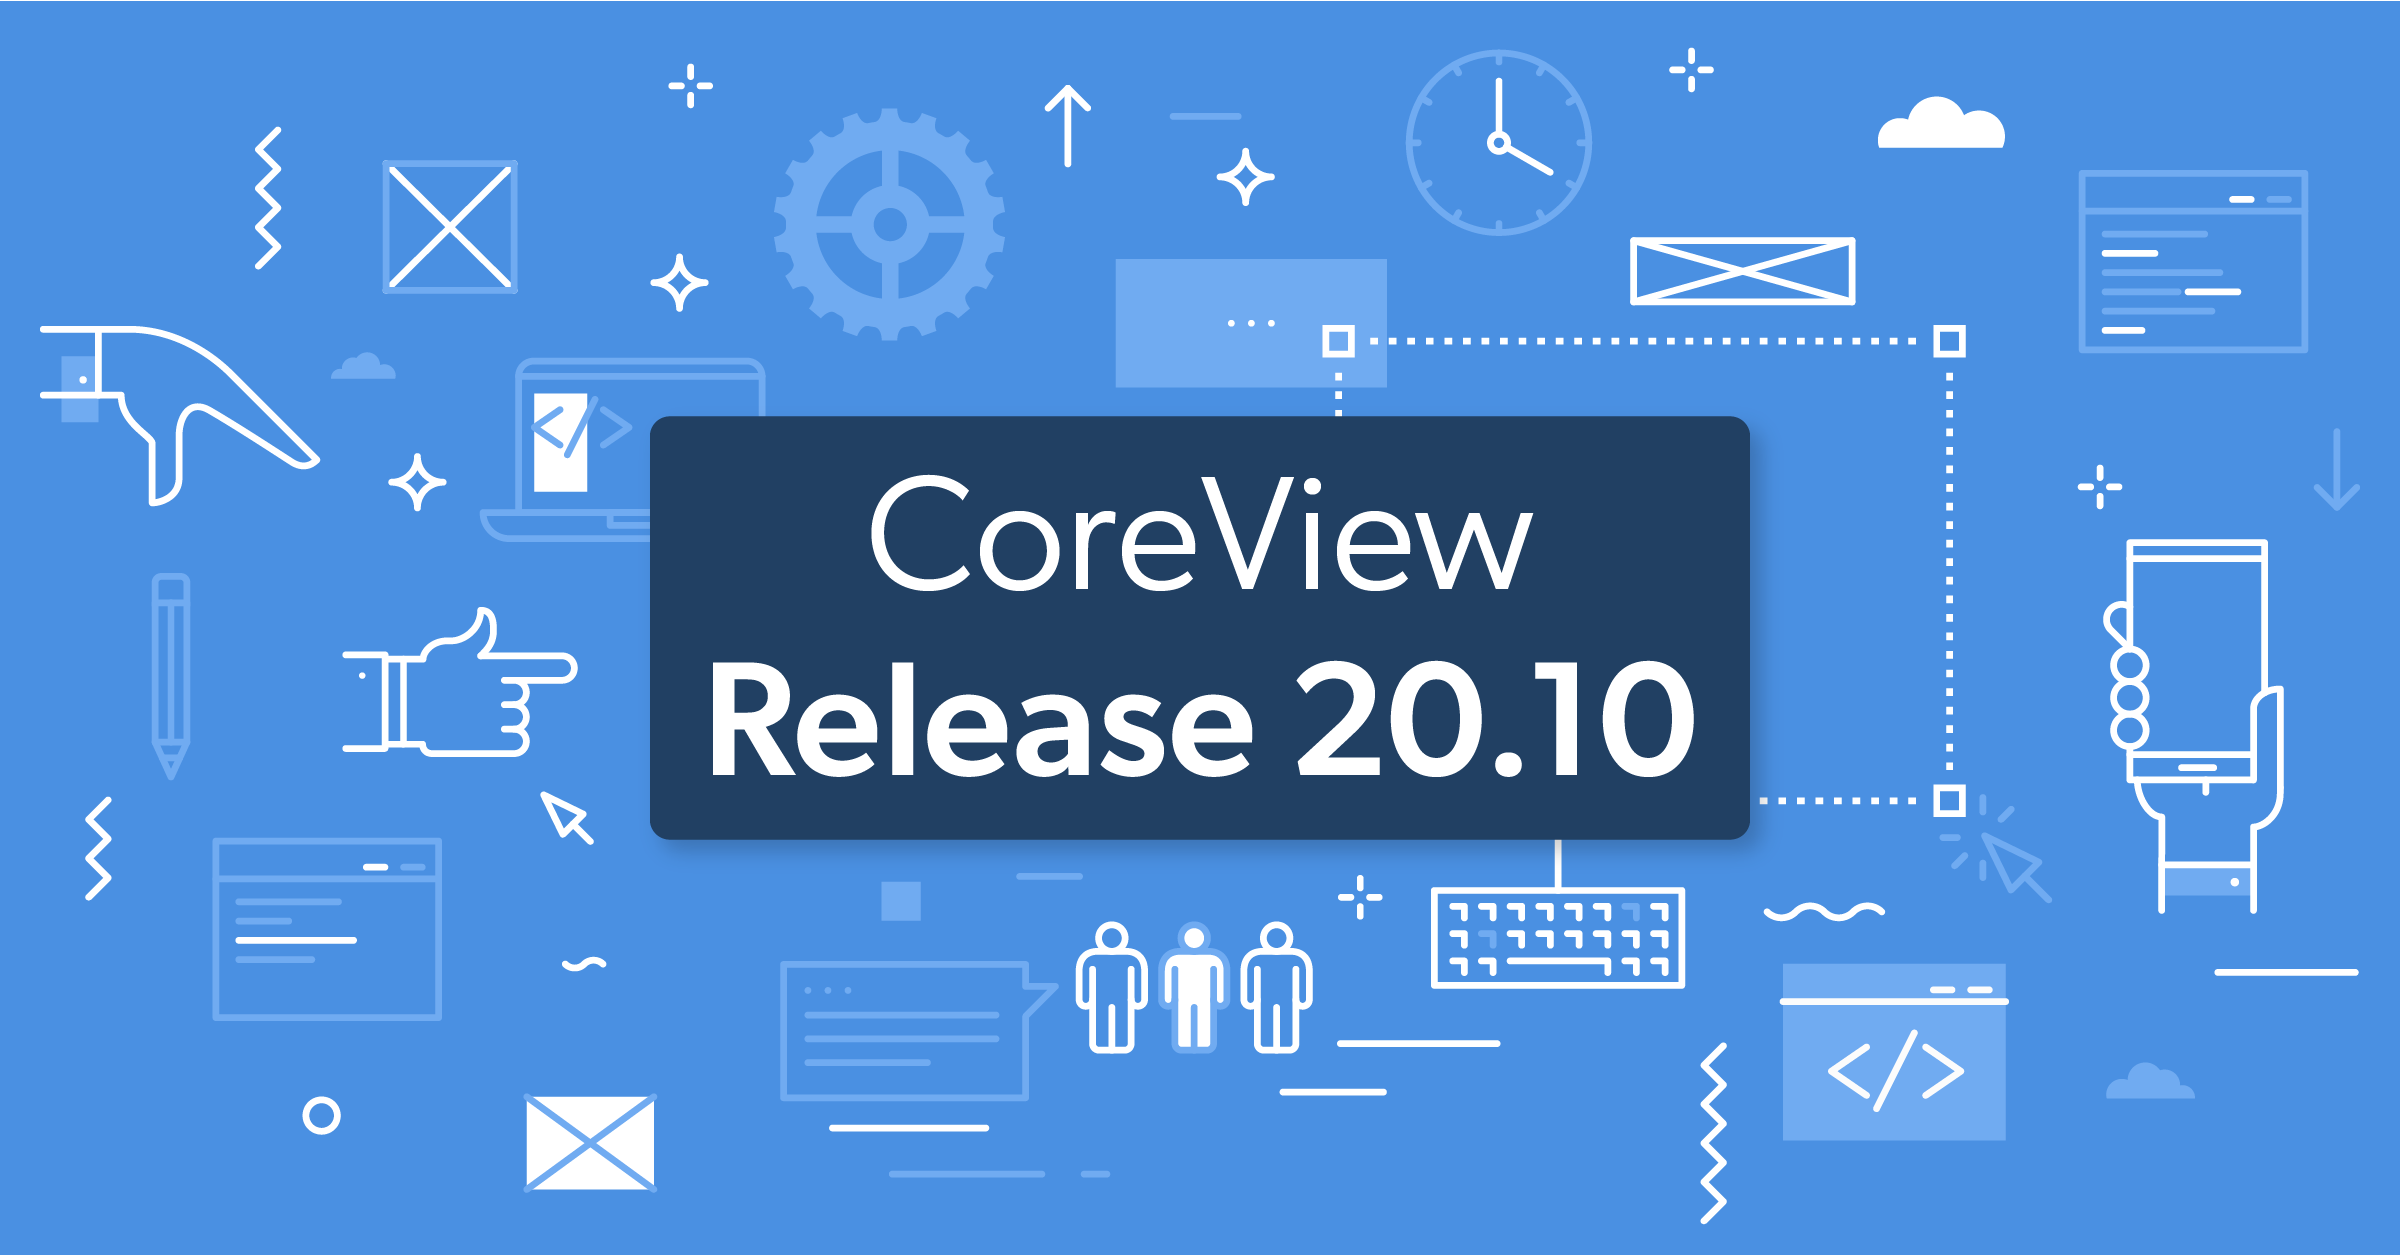 CoreView Release 20.10